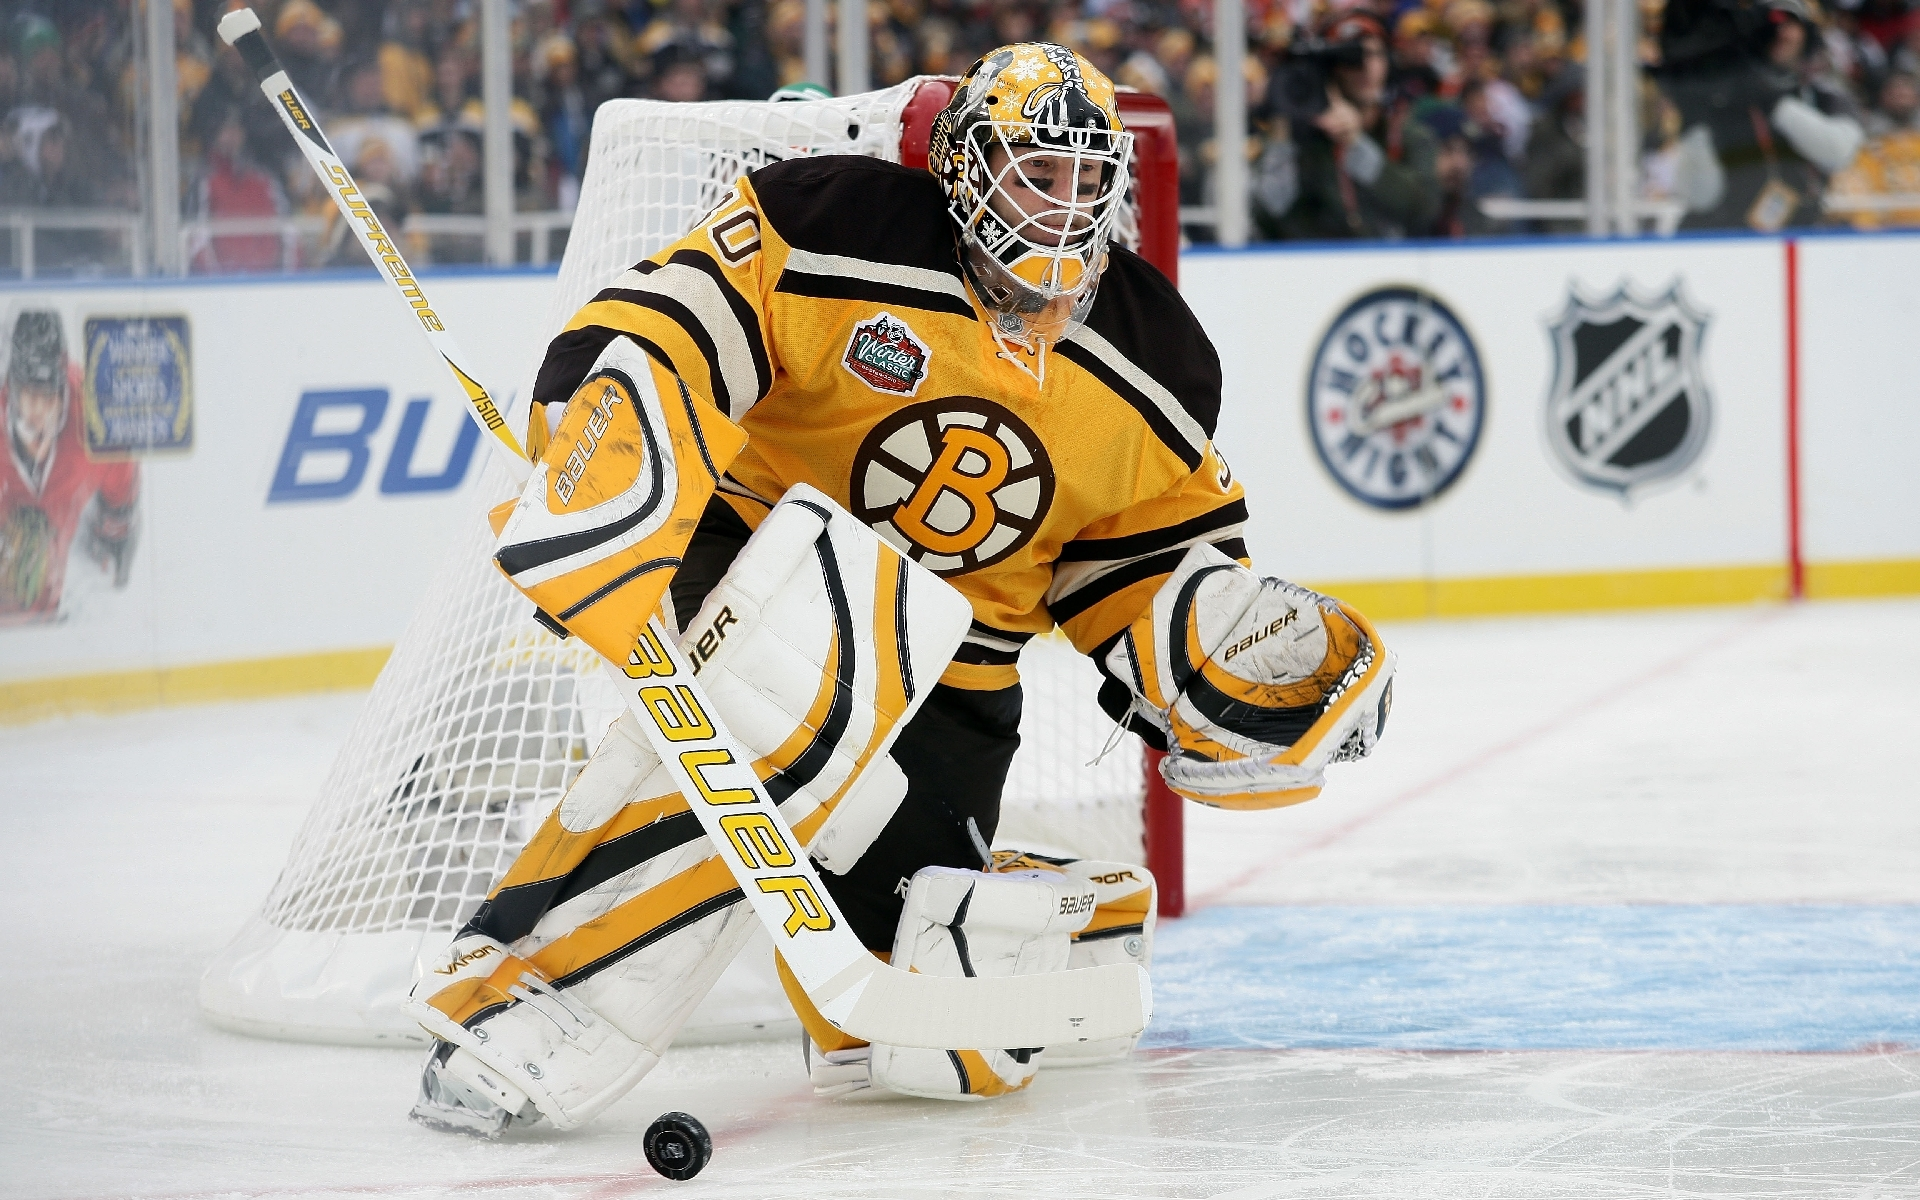 46068 download wallpaper Sports, People, Hockey screensavers and pictures for free